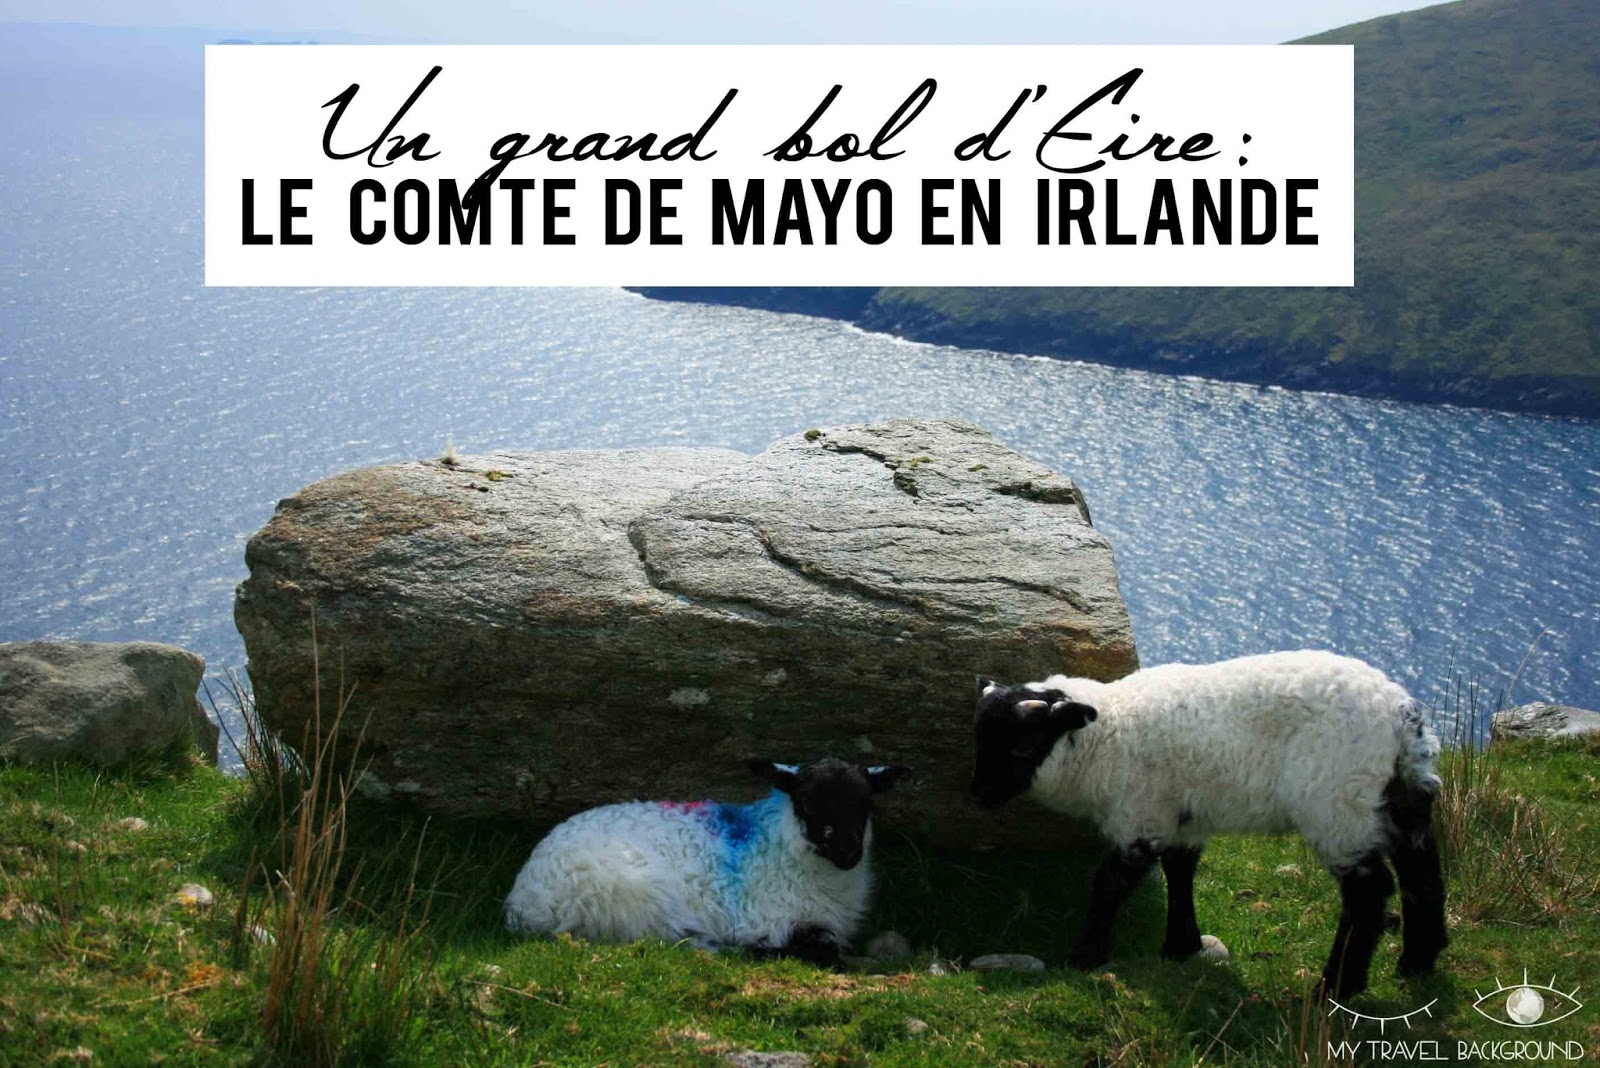 My Travel Background : un grand bol d'Eire dans le comté de Mayo en Irlande